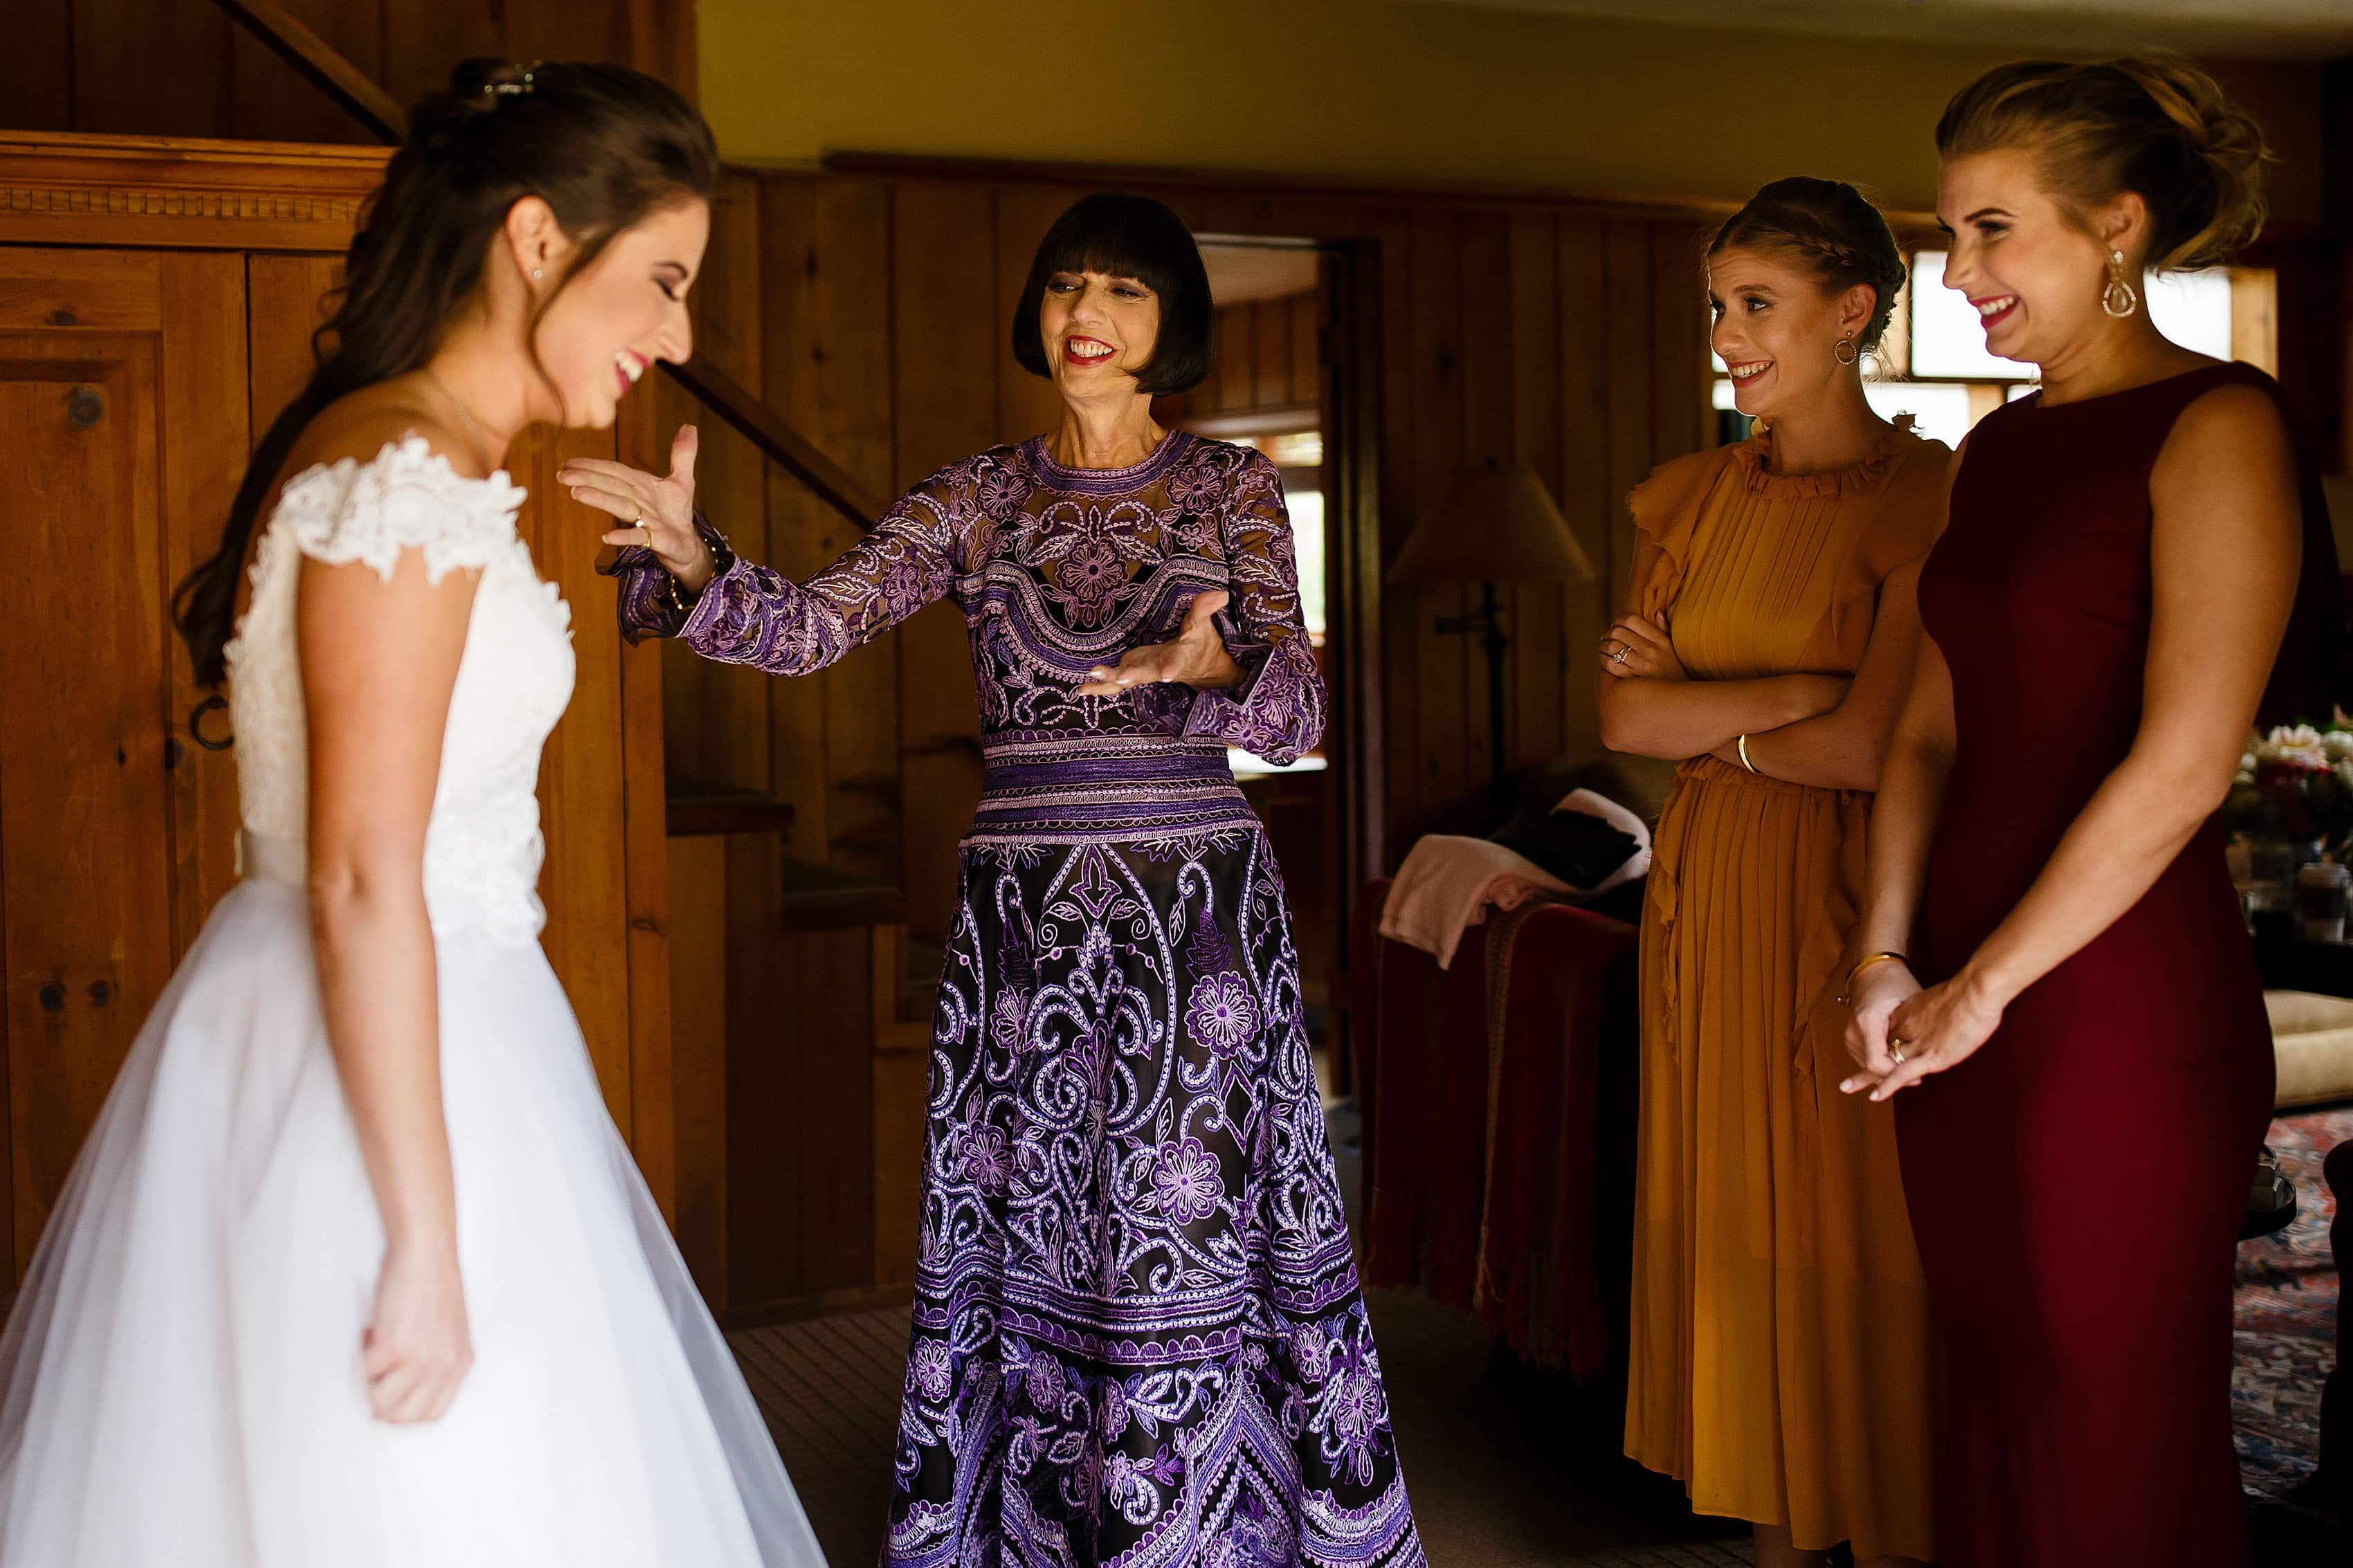 Mallory's mother and sisters react to seing her in her dress before the wedding at Snowmass Cottages near Aspen